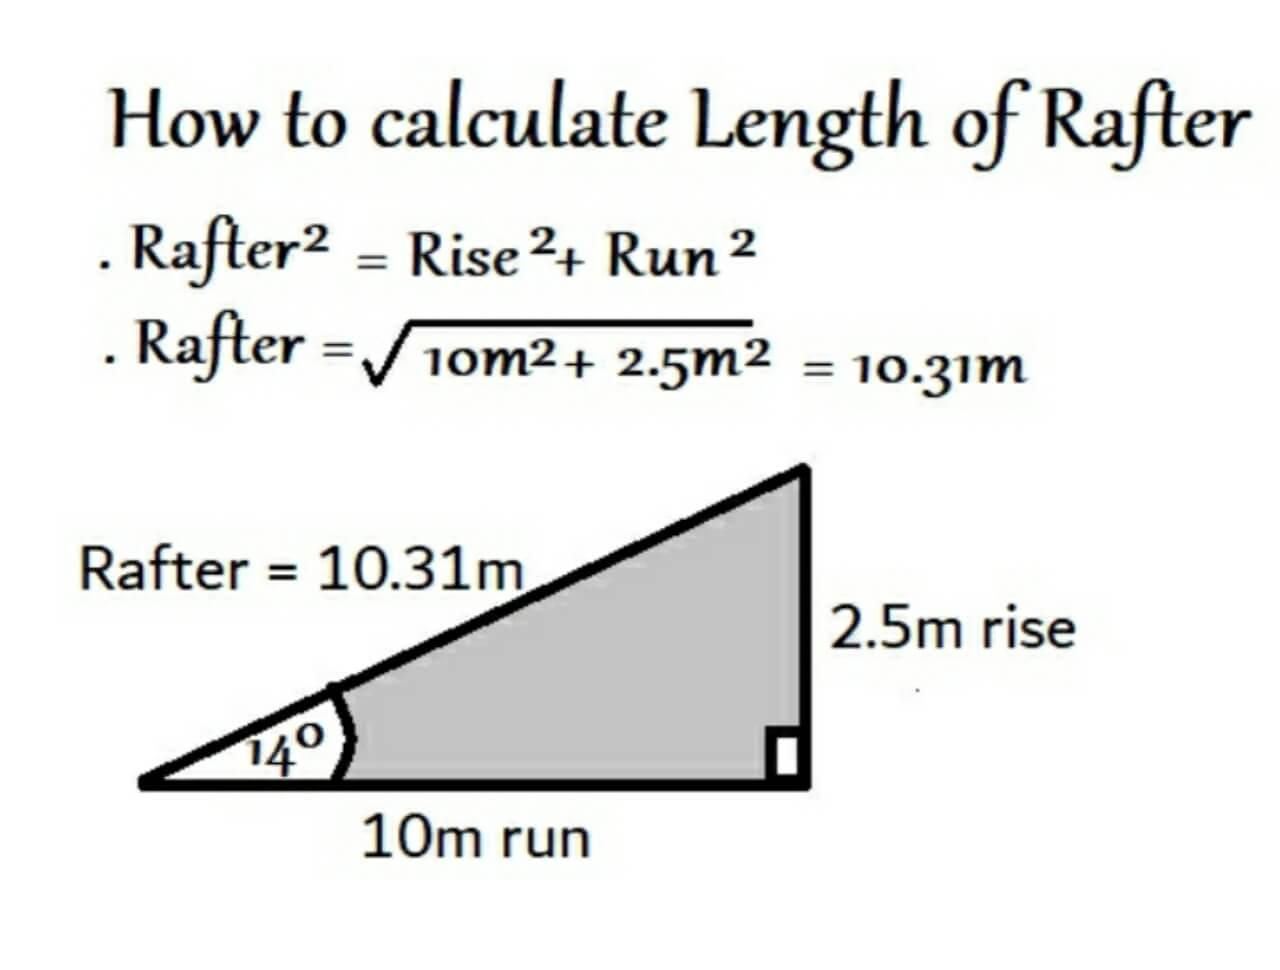 How to calculate length of rafter